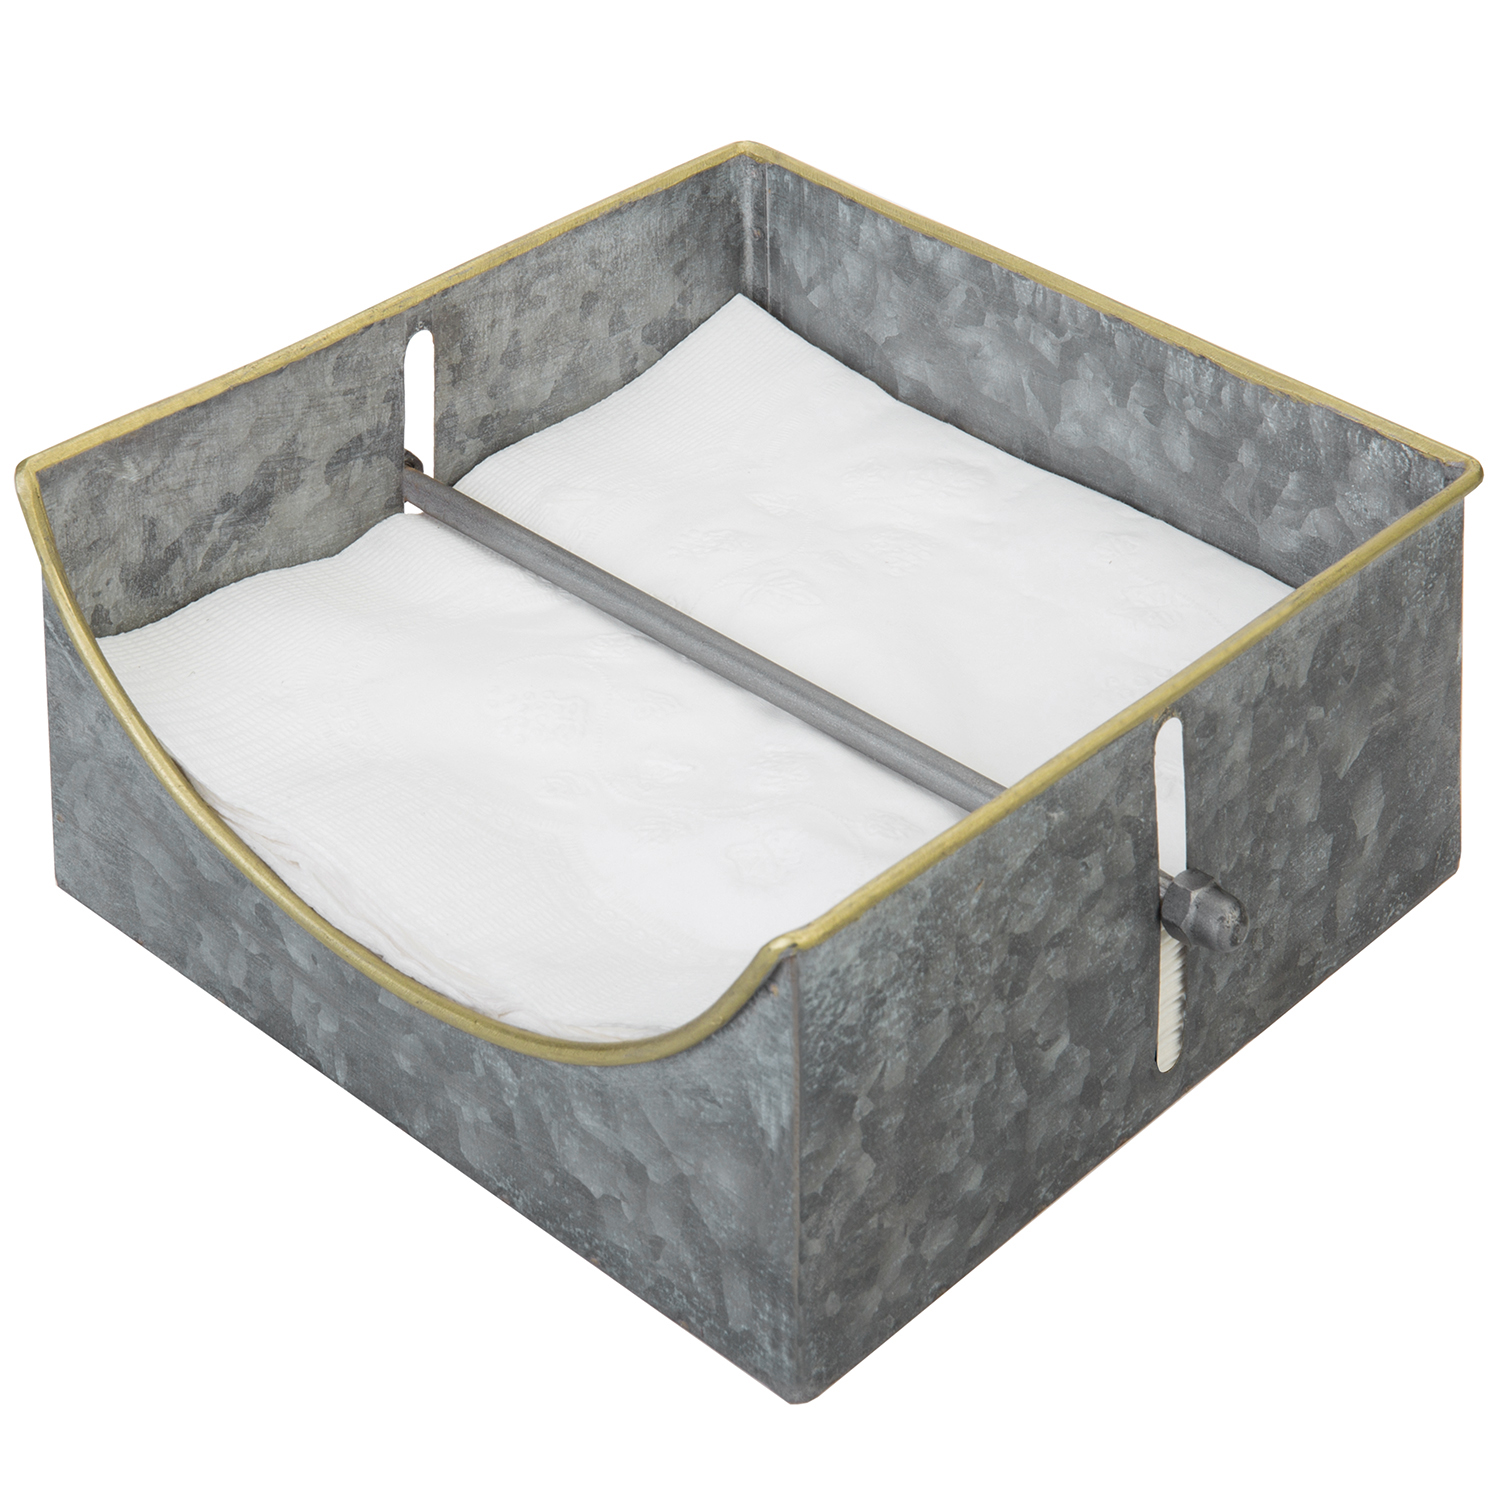 Mygift Galvanized Silver Metal Square Napkin Holder With Weighted Center Arm Bar Ebay